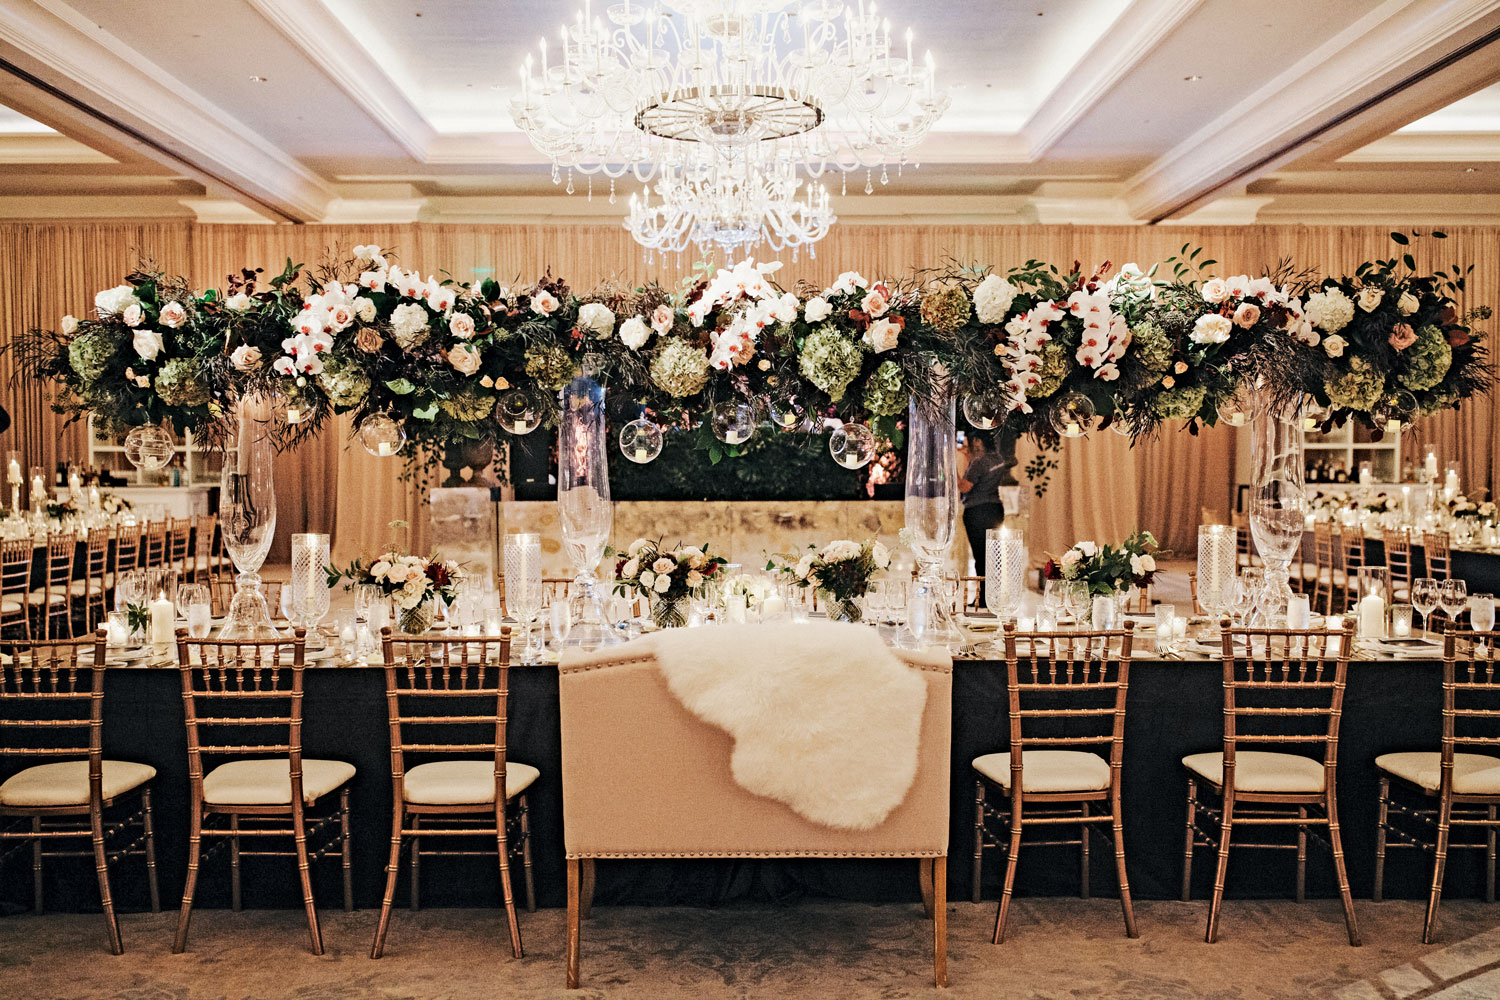 Inside Weddings Summer 2018 issue preview alex wood suzanna villarreal wedding reception table